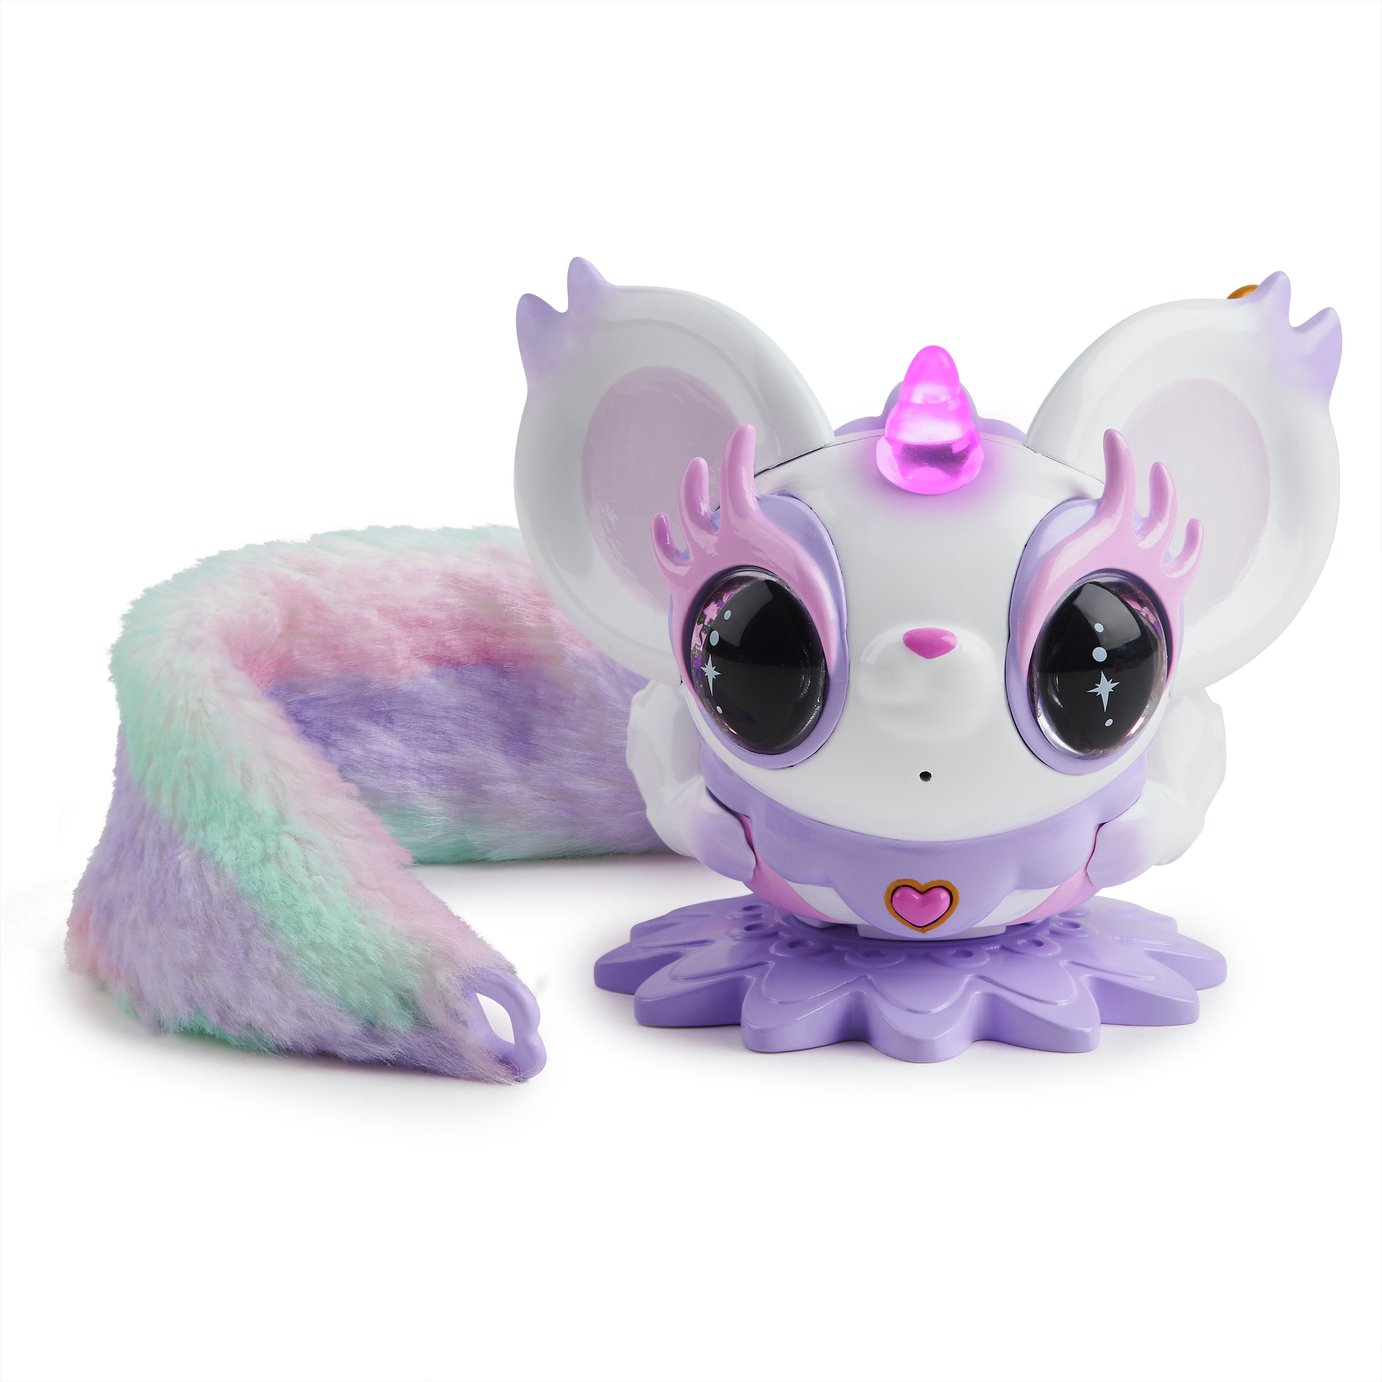 Pixie Belles - Esme (White) - Interactive Enchanted Animal